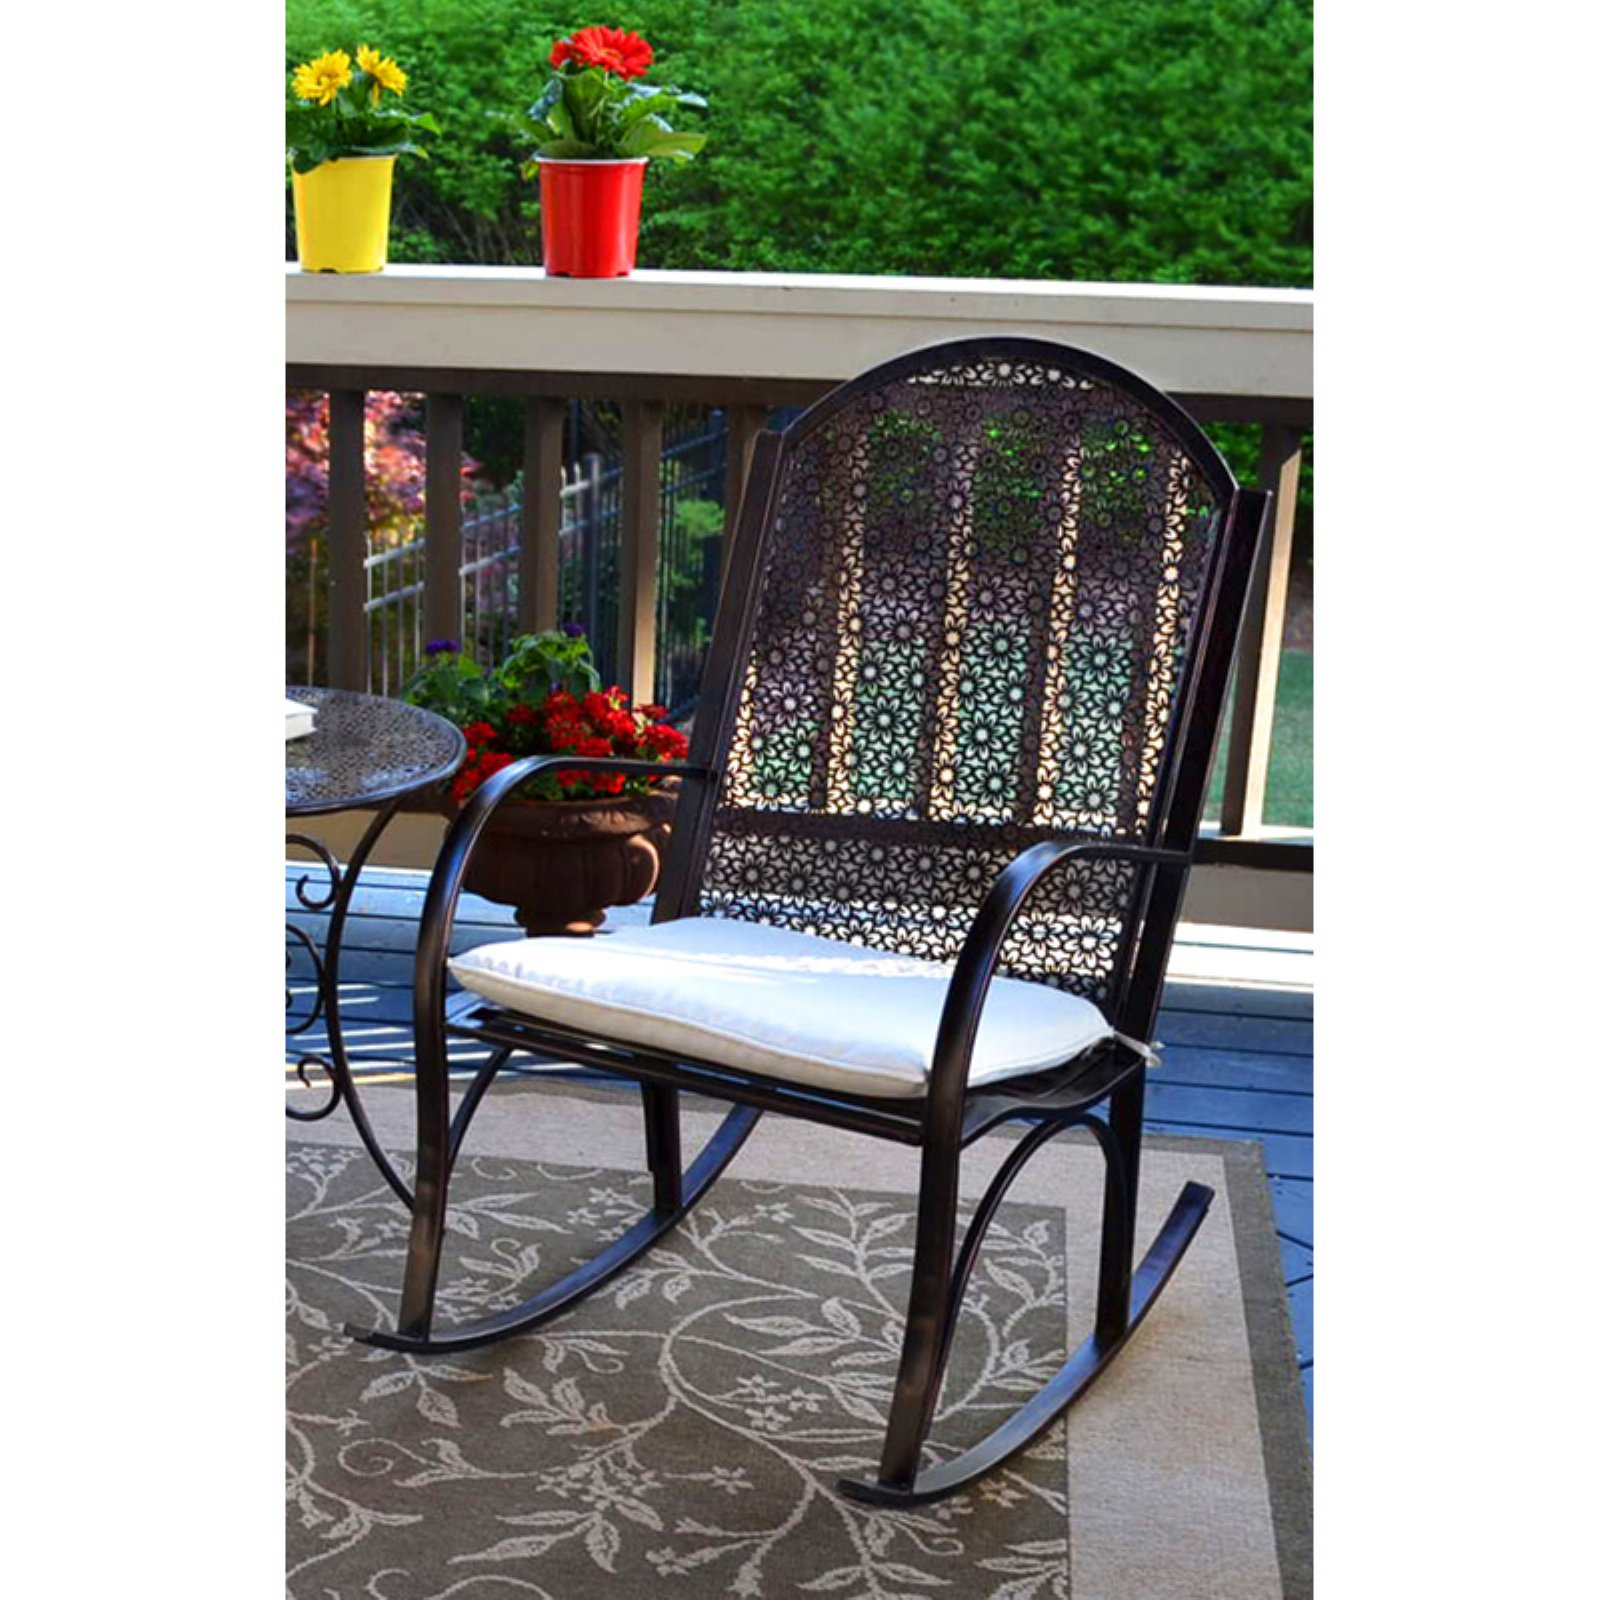 Tortuga Outdoor Rocking Chair with Cushion Patio rocking